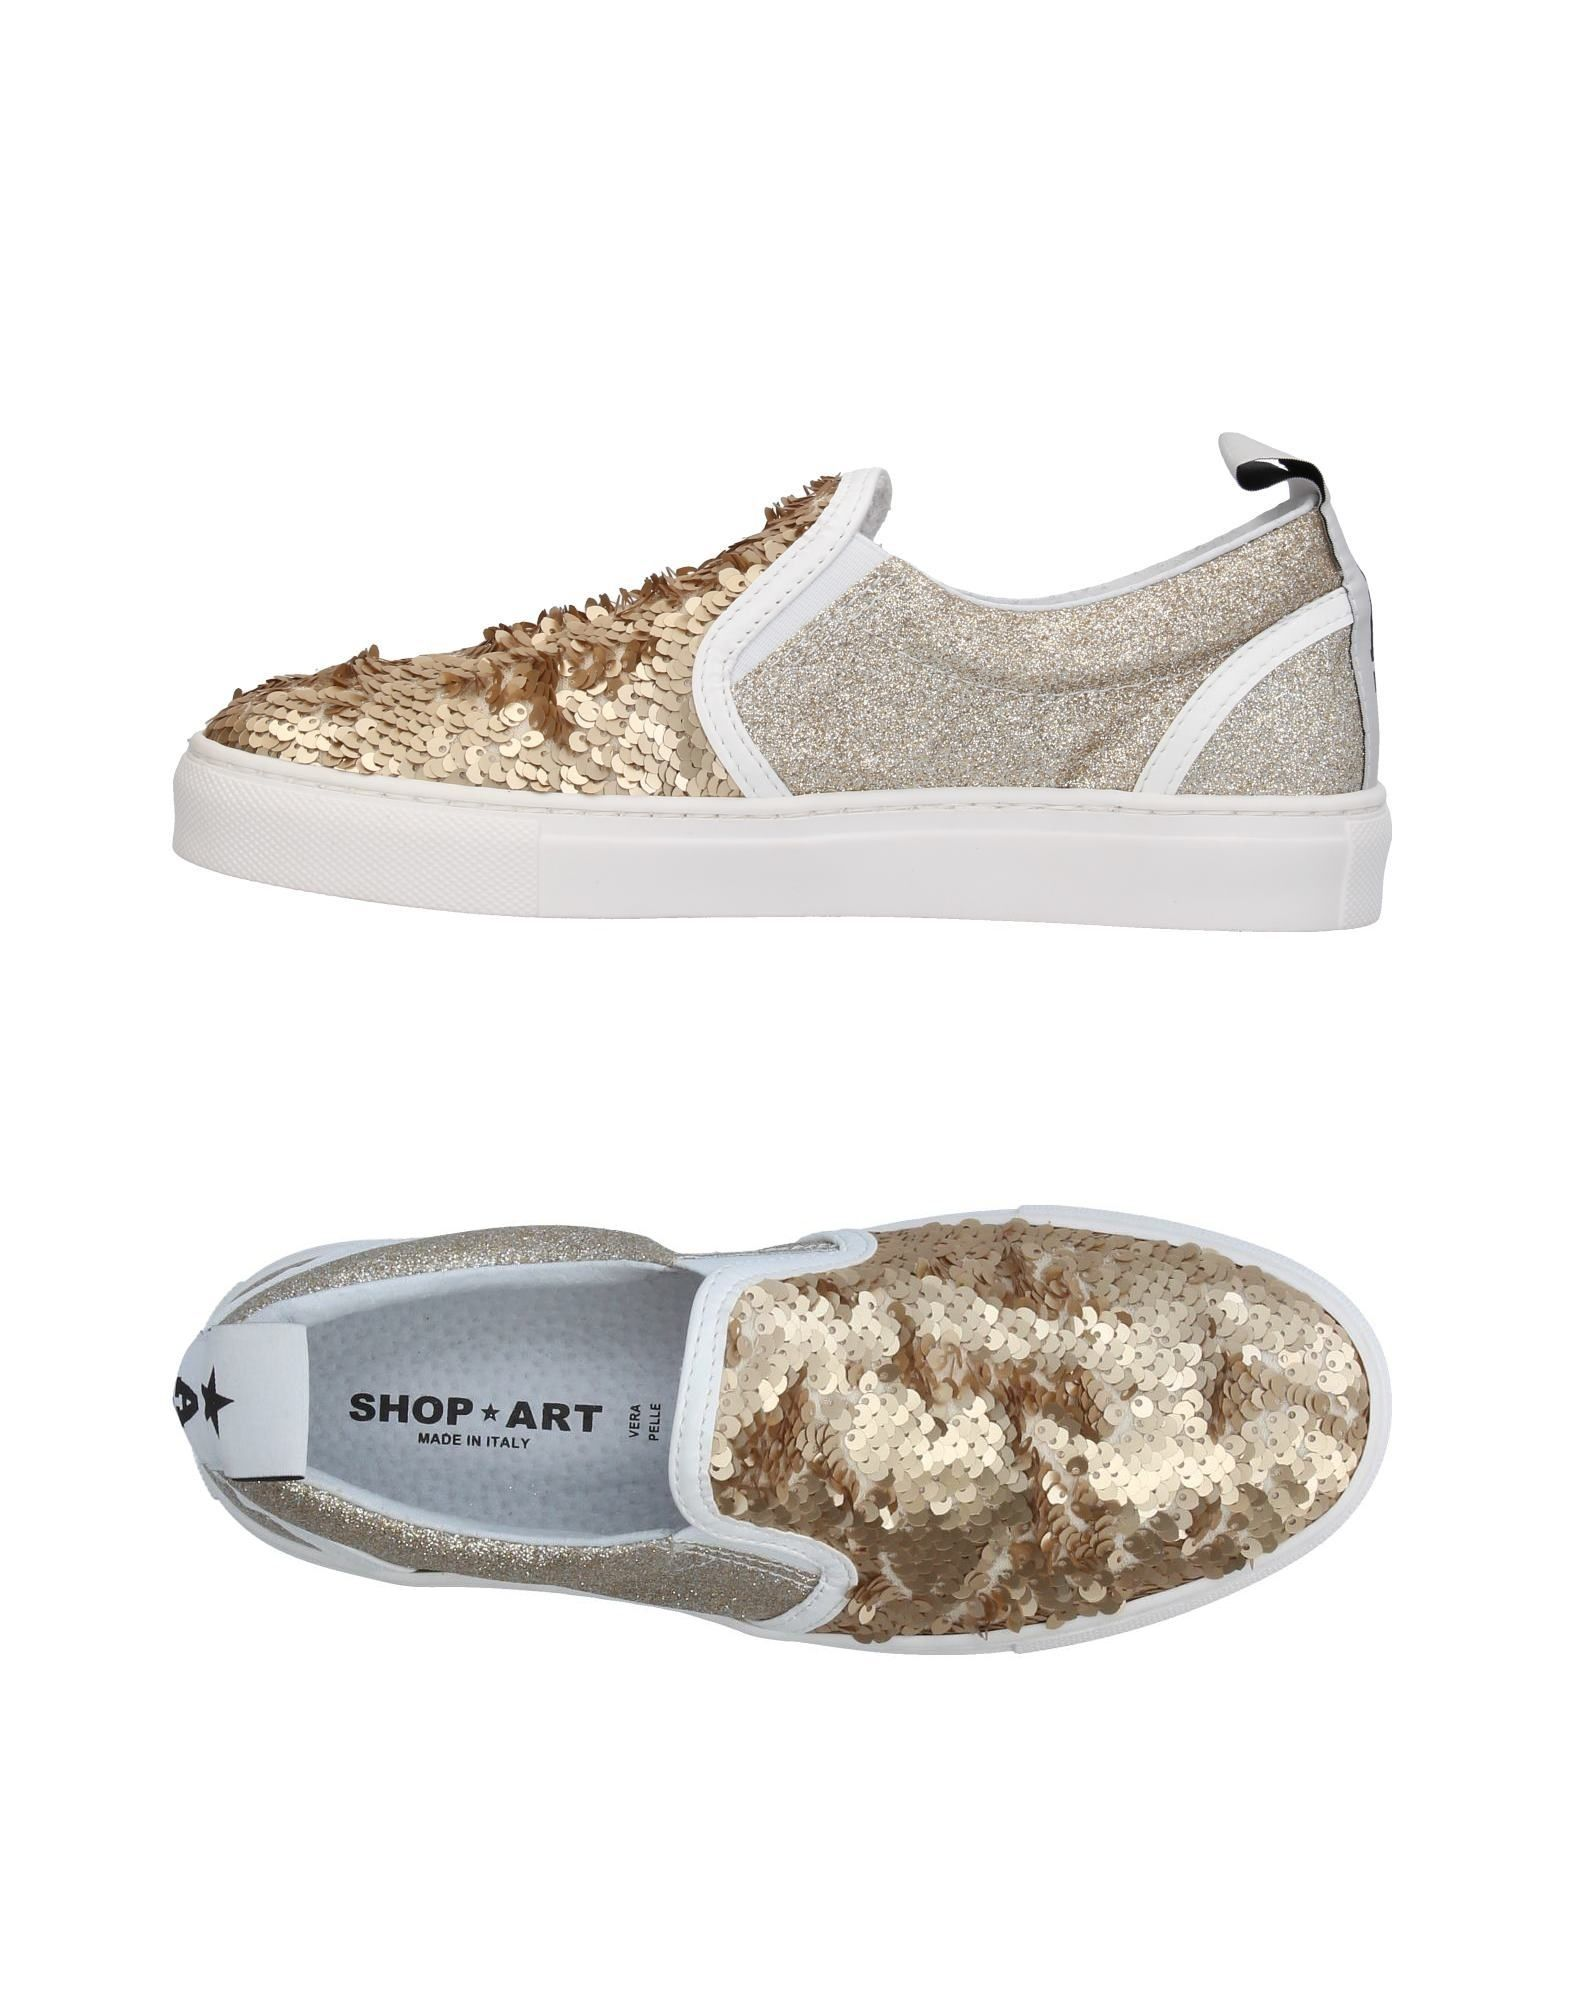 Sneakers Shop ★ Art Donna - 11361317BC